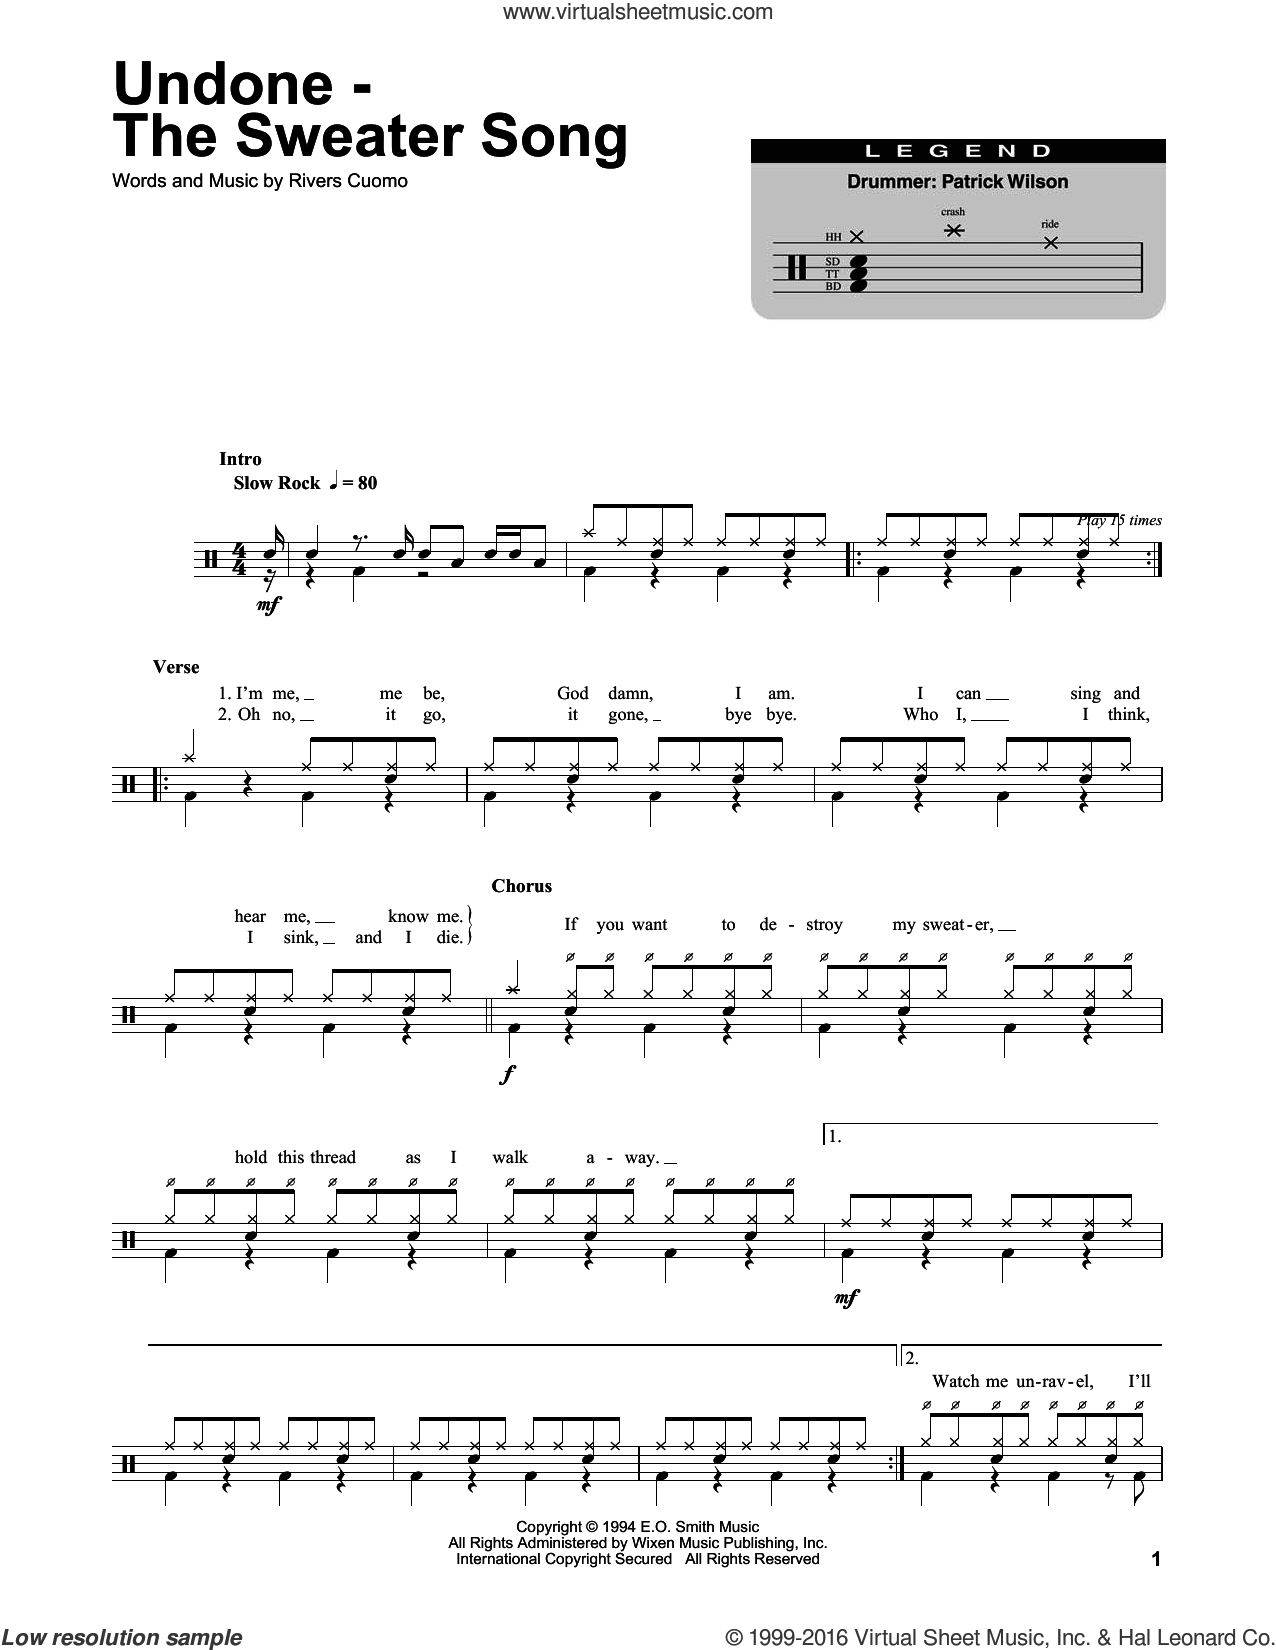 Weezer - Undone - The Sweater Song sheet music for drums [PDF]